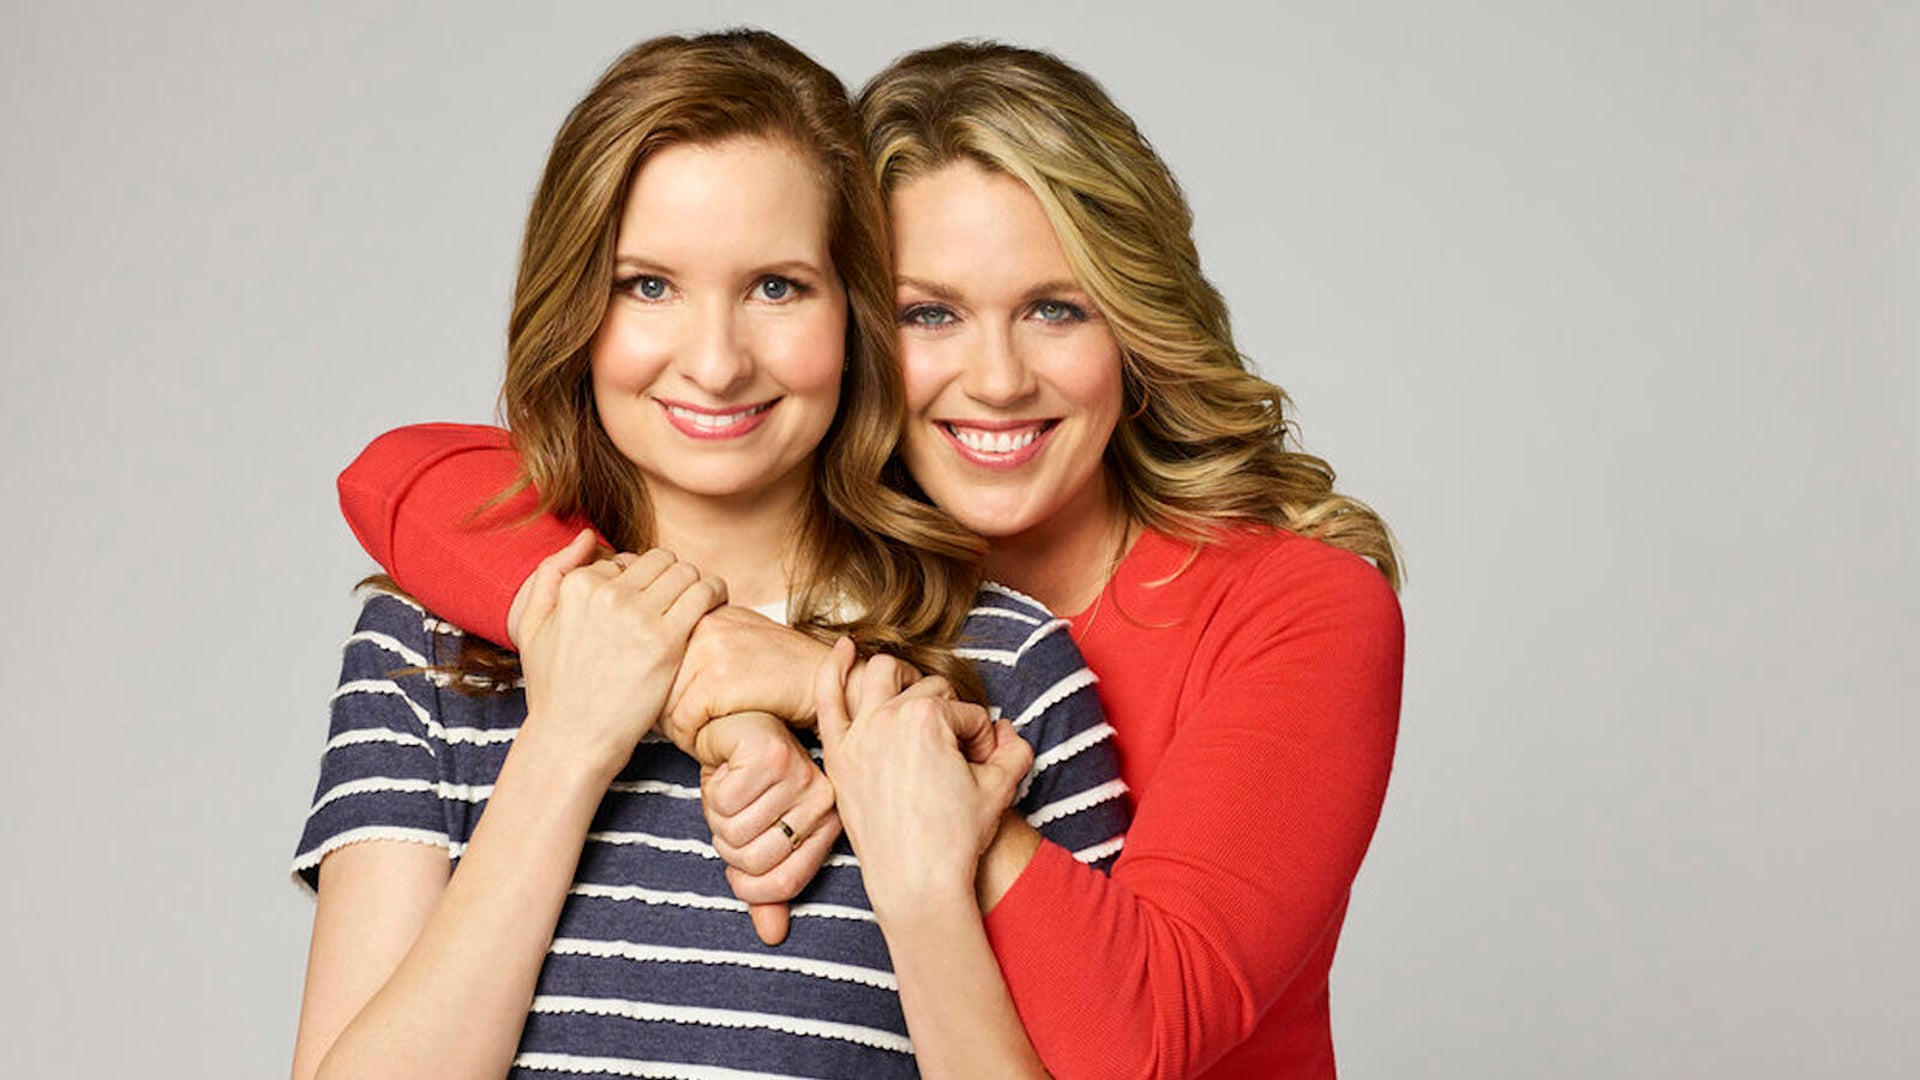 Lennon Parham and Jessica St. Clair, Playing House